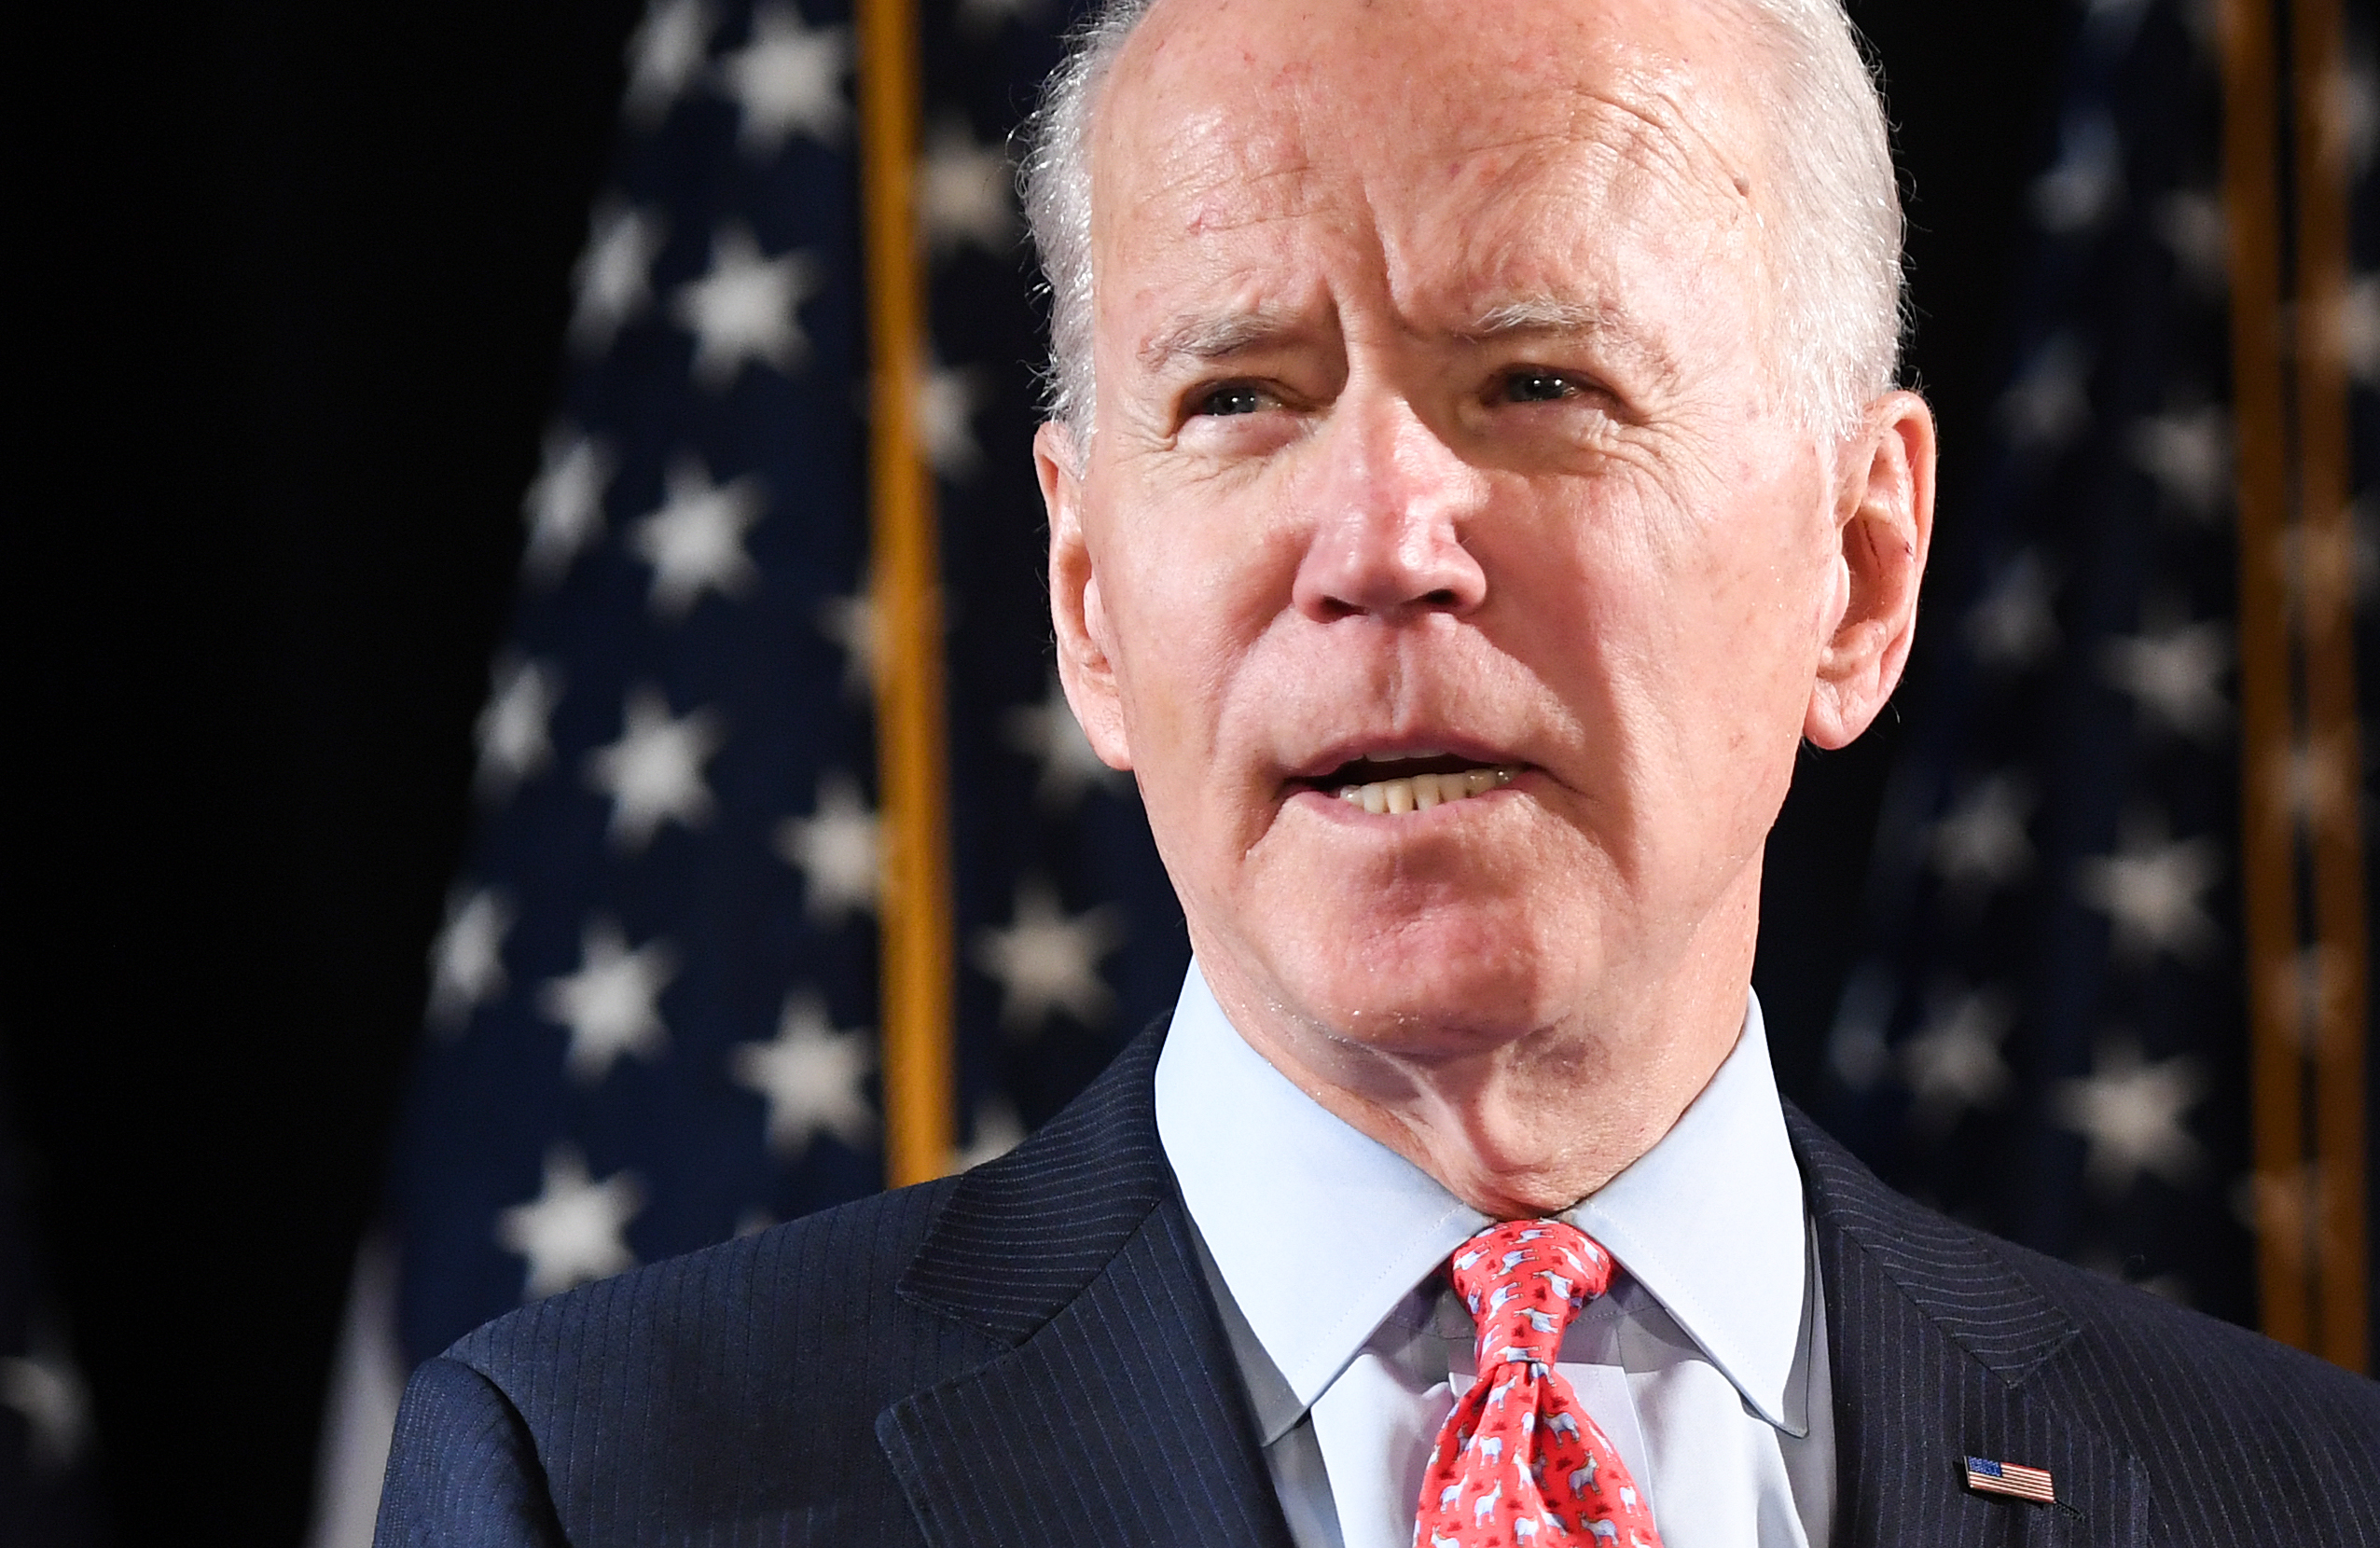 Joe Biden says Democrats 'should be thinking about' holding a virtual summer convention